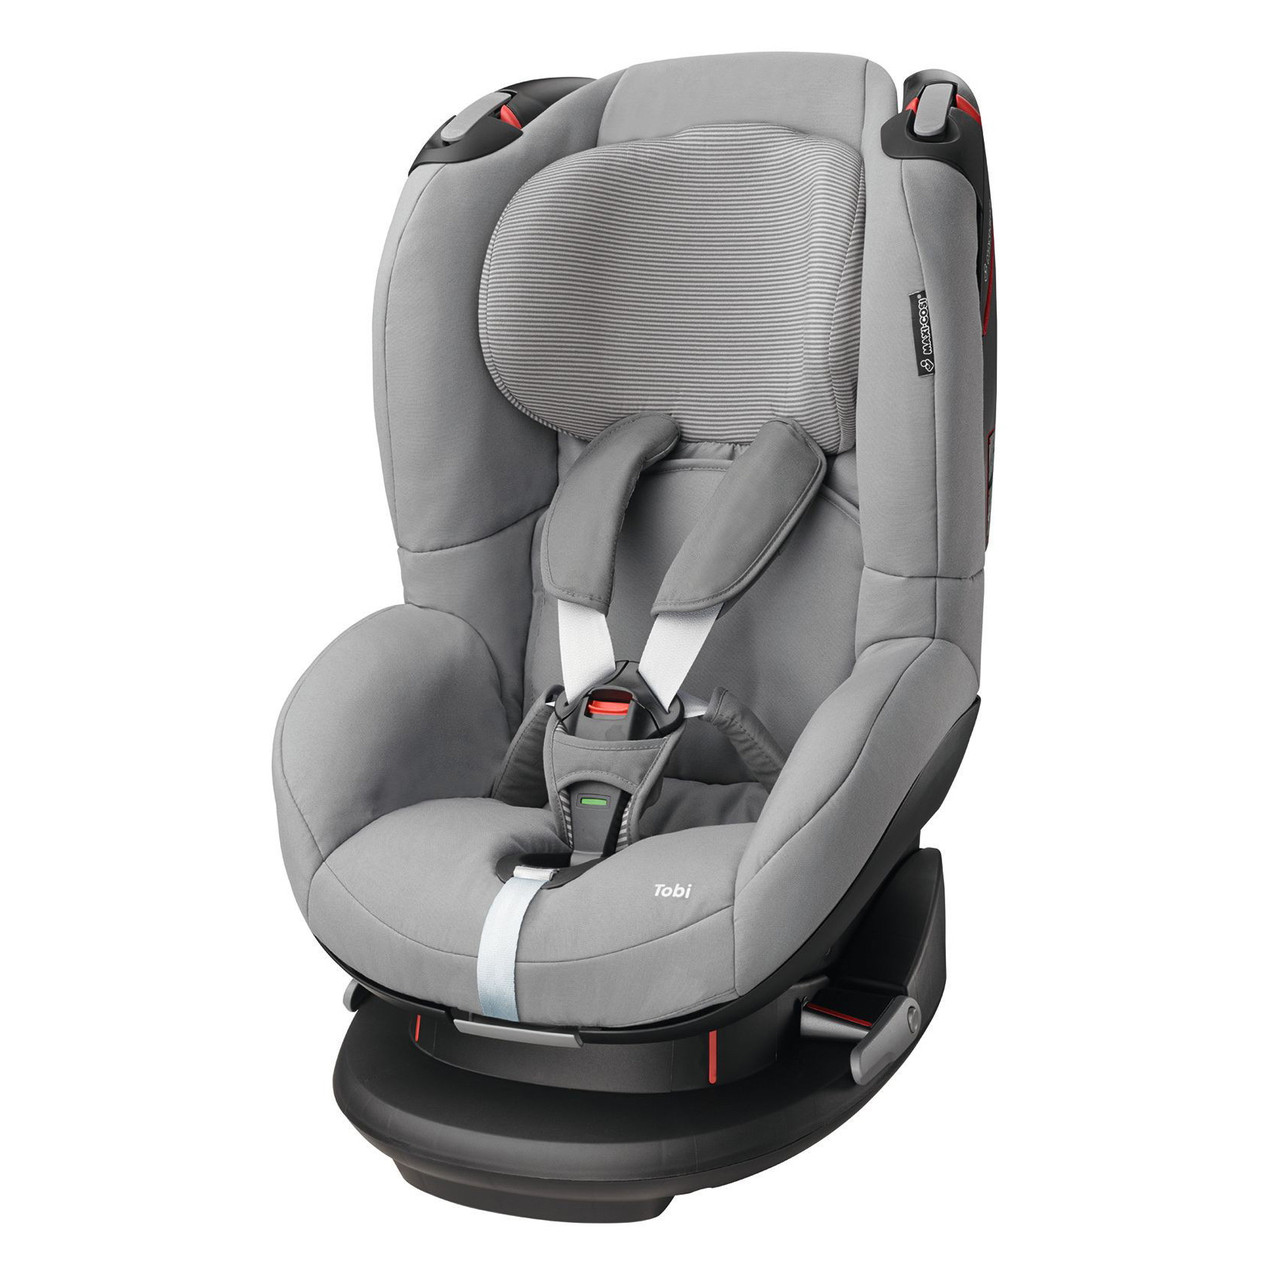 Автокресло Maxi Cosi Tobi 9-18 кг (60108960) Concrete Grey (серый)